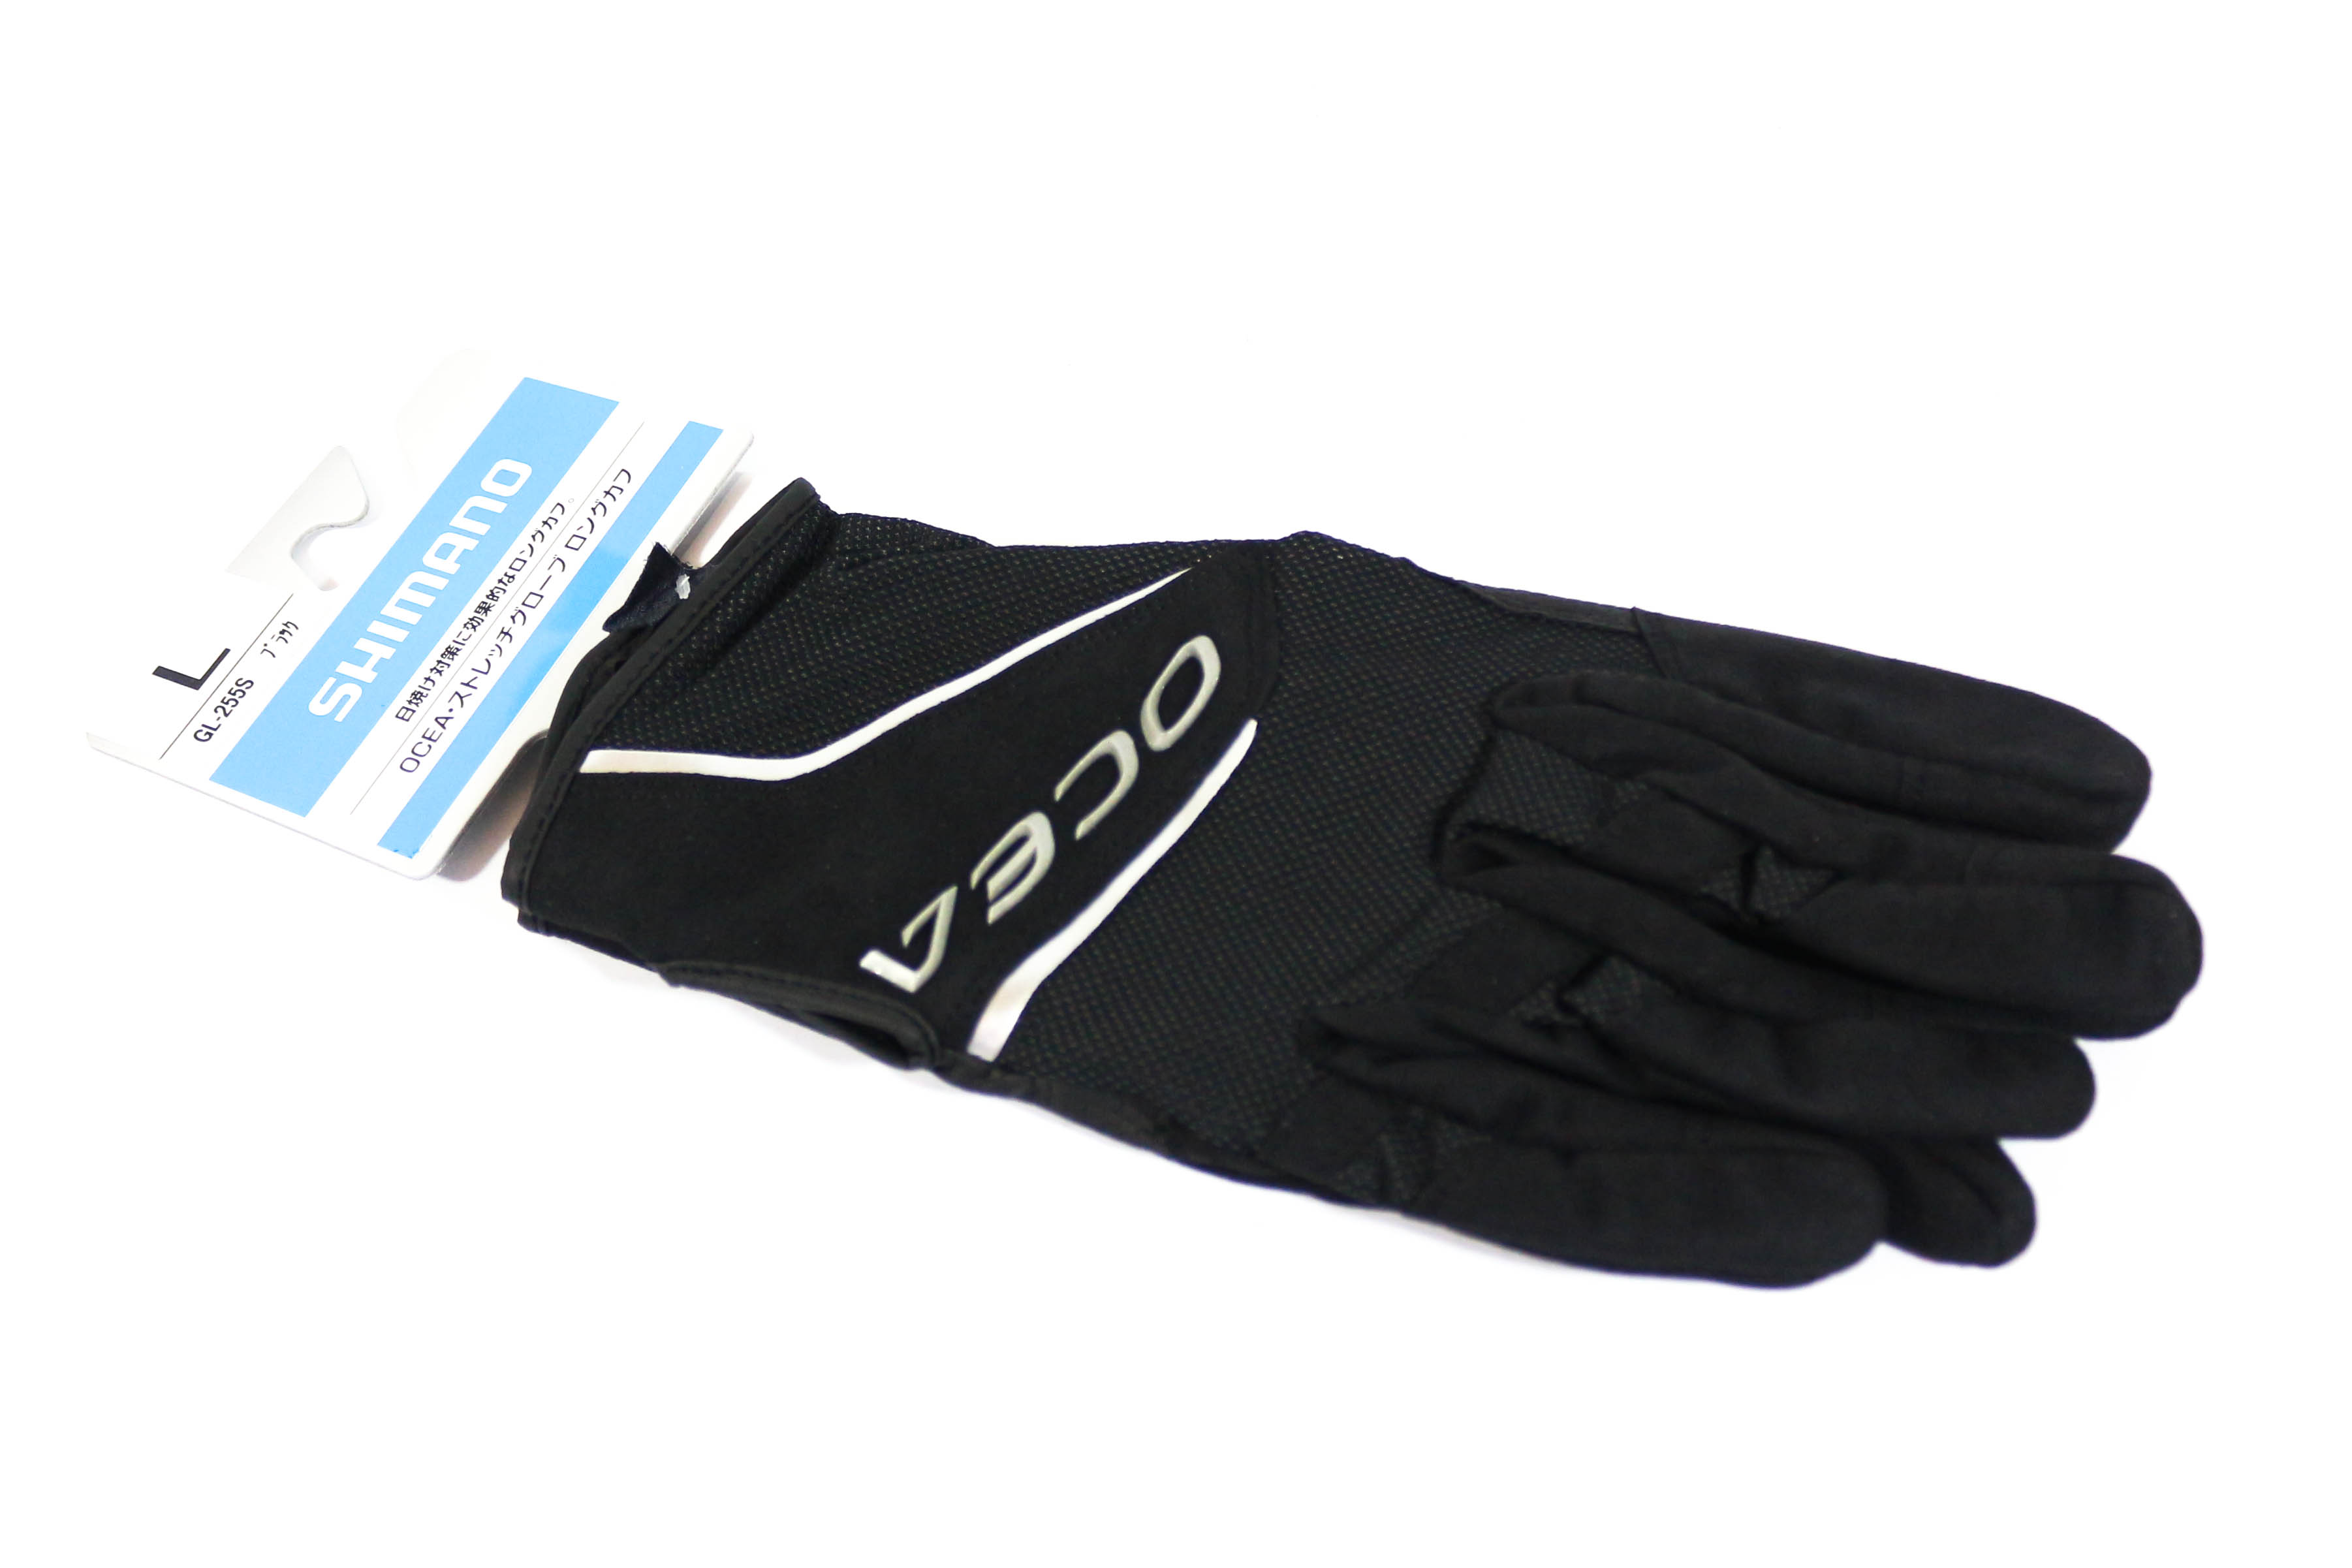 Shimano GL-255S Gloves Ocea Long Cuff Stretch Glove Black Size L 634764